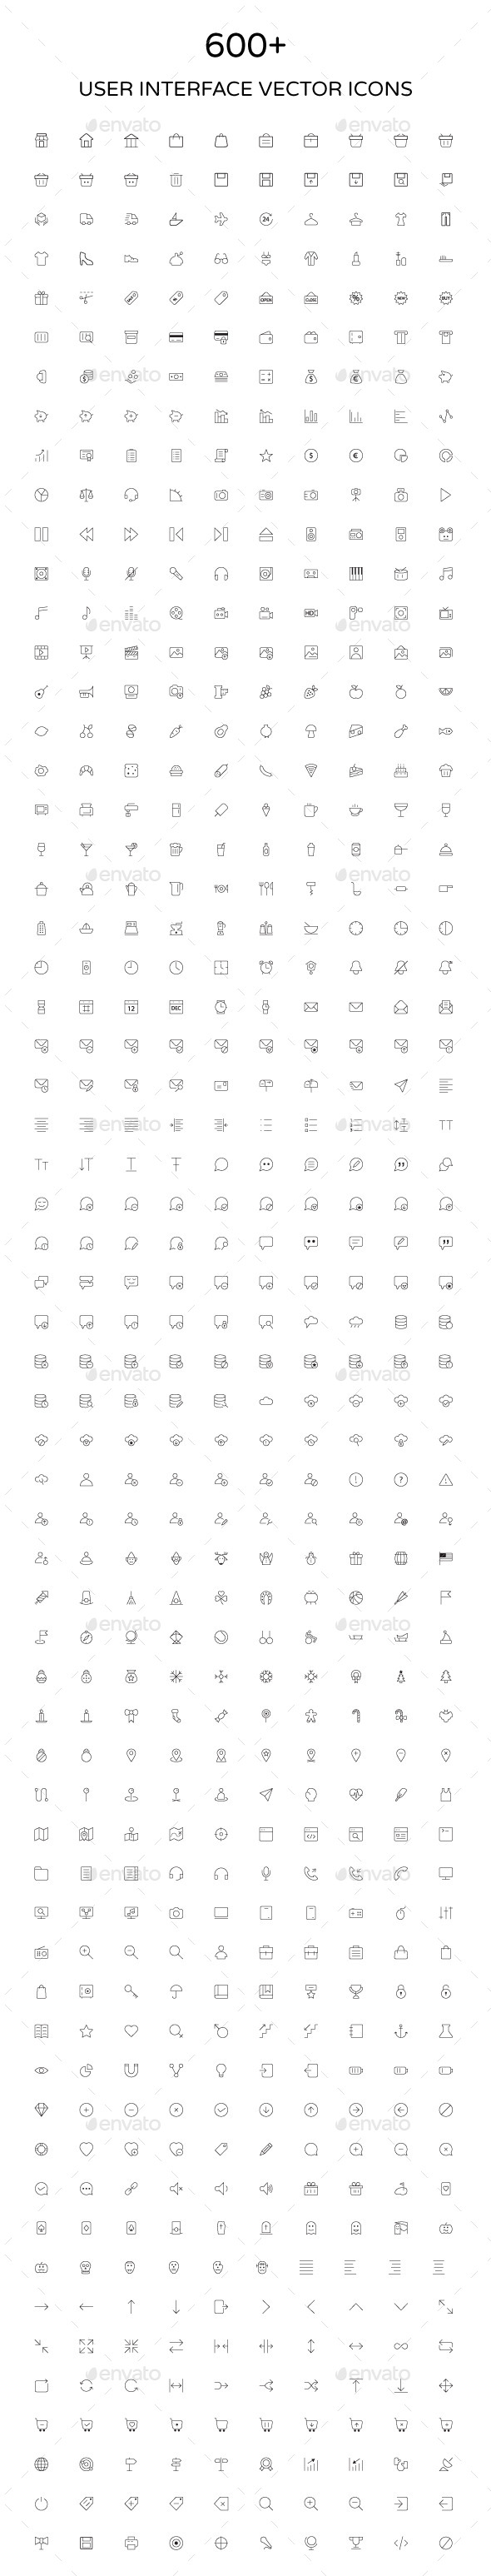 User Interface Outline Vector Icons